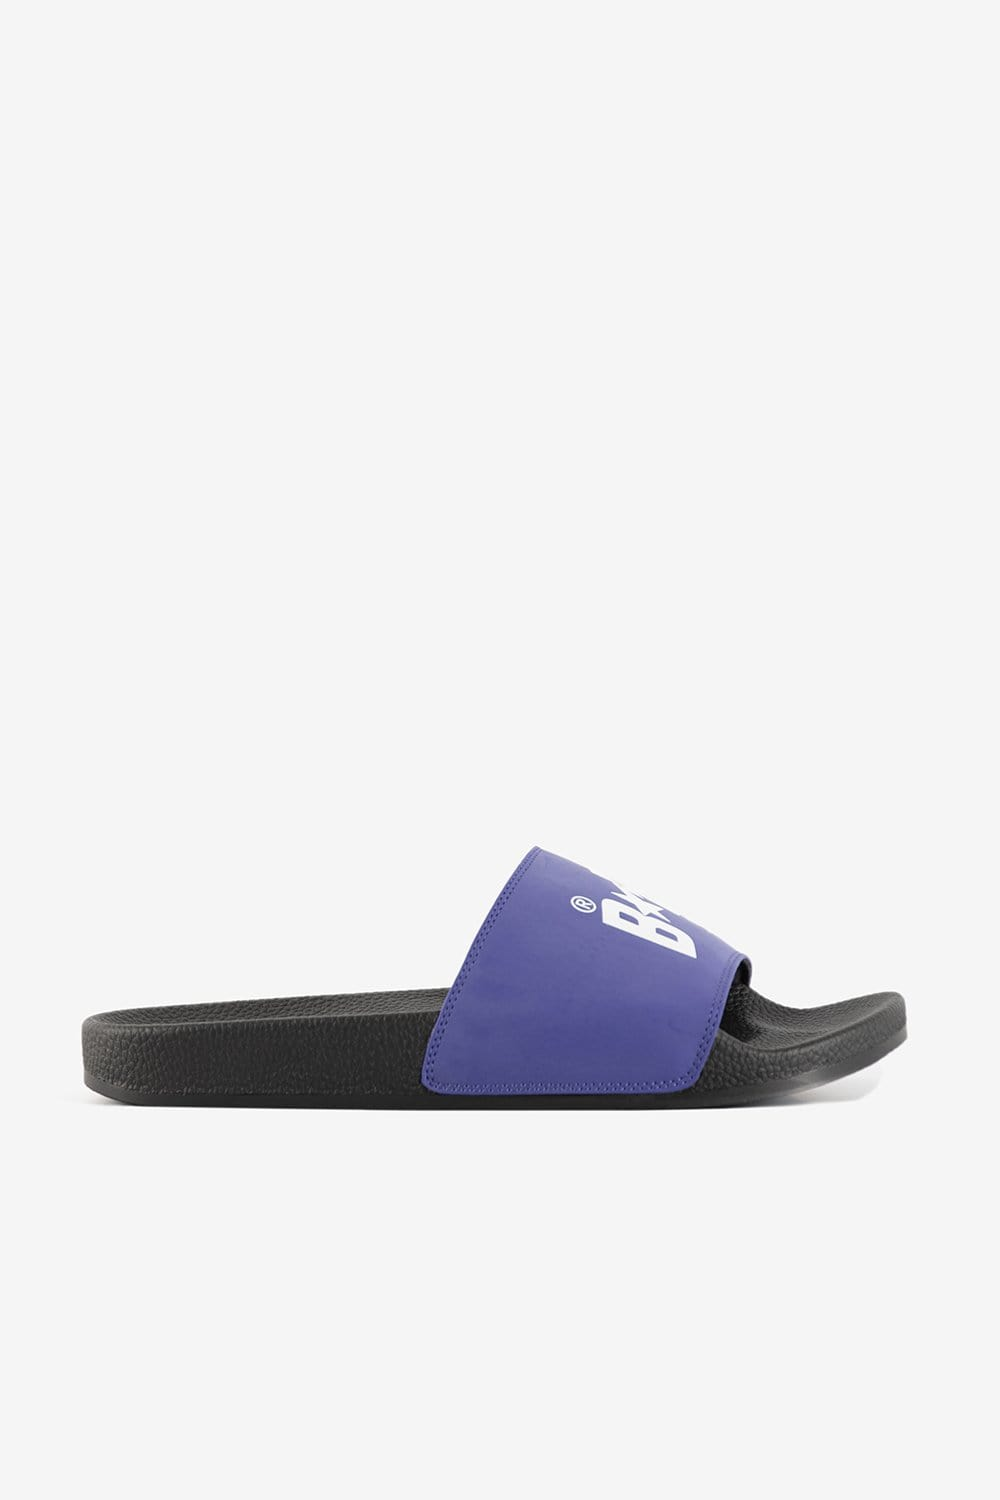 A Bathing Ape Footwear Bapesta Slide Sandals Purple